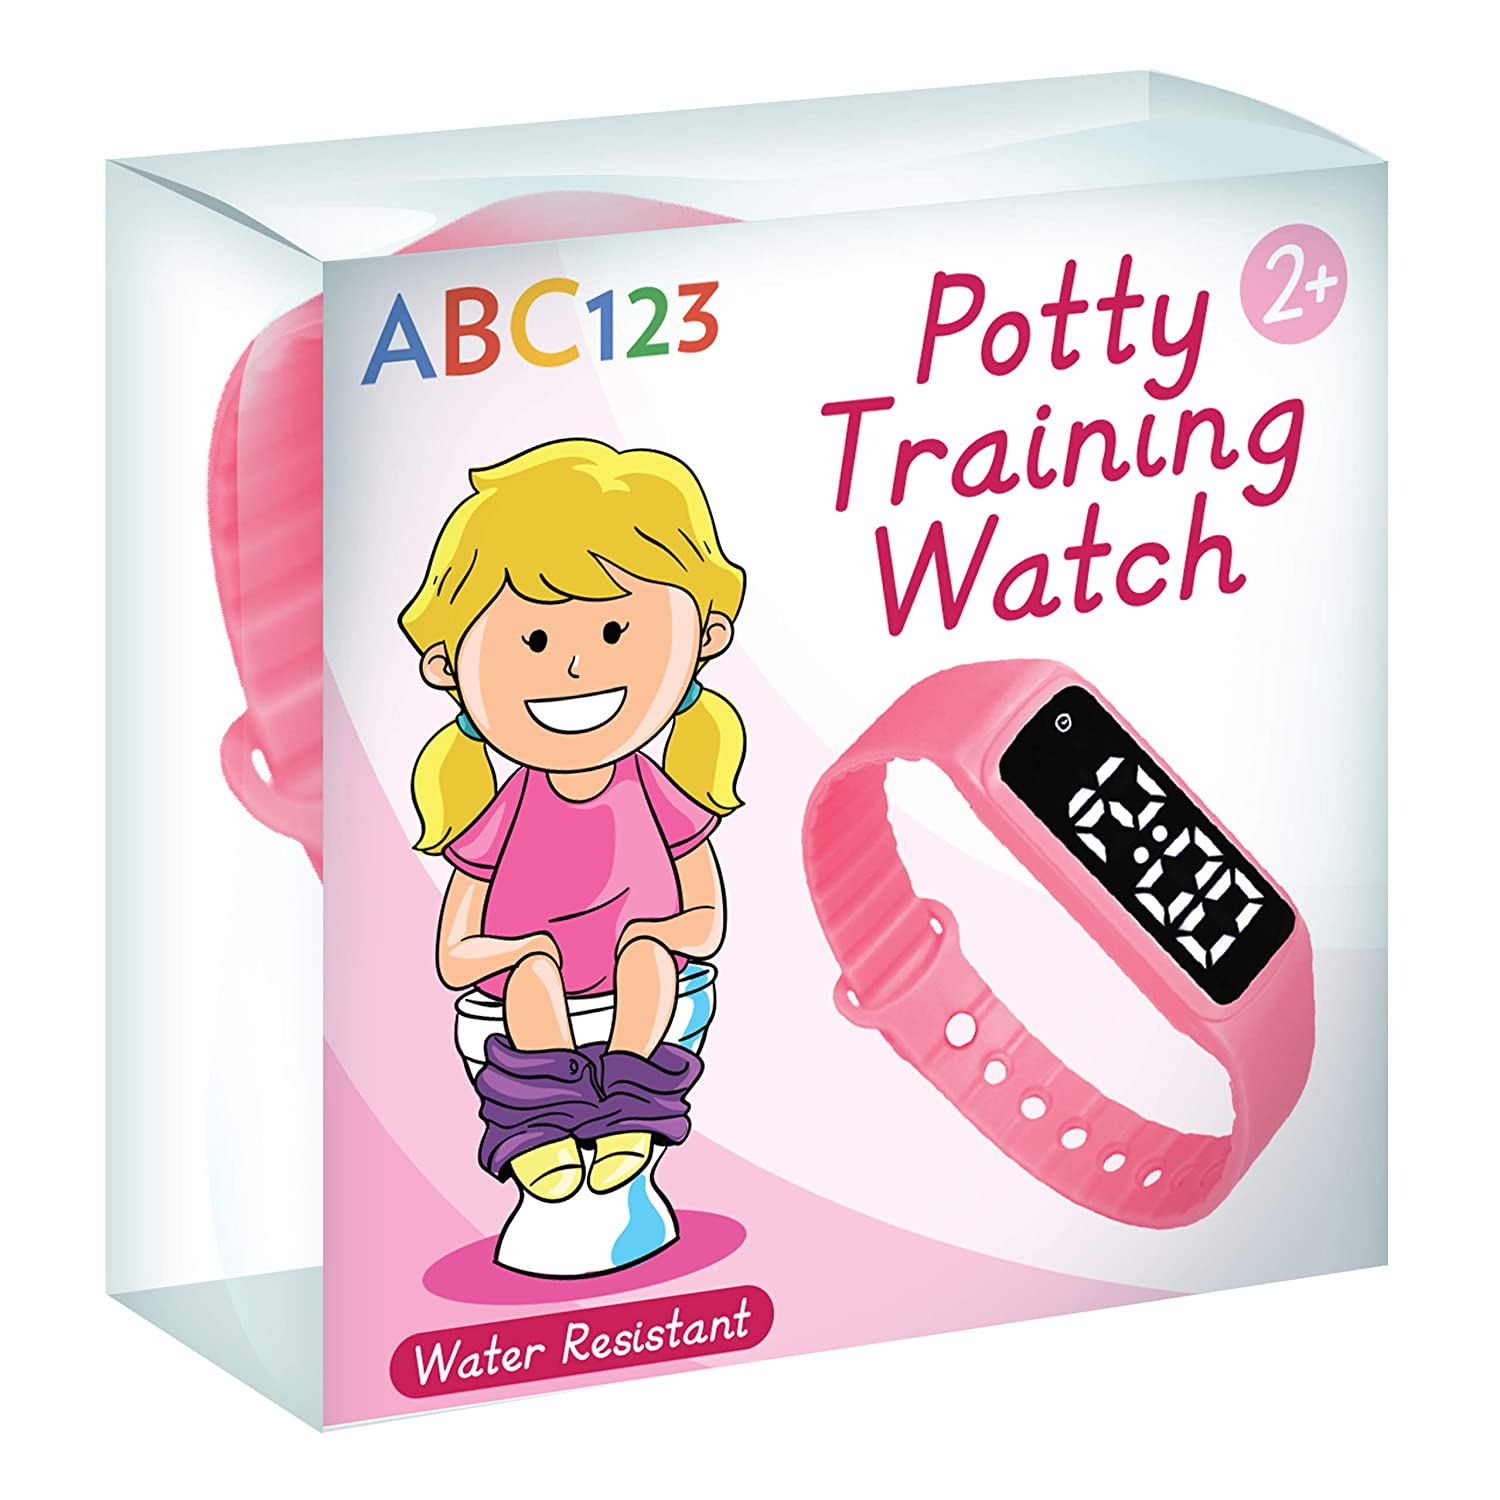 Abc123 Potty Training Watch - Baby Reminder Water Resistant Timer für Toilet Training Kids & Toddler (Pink)